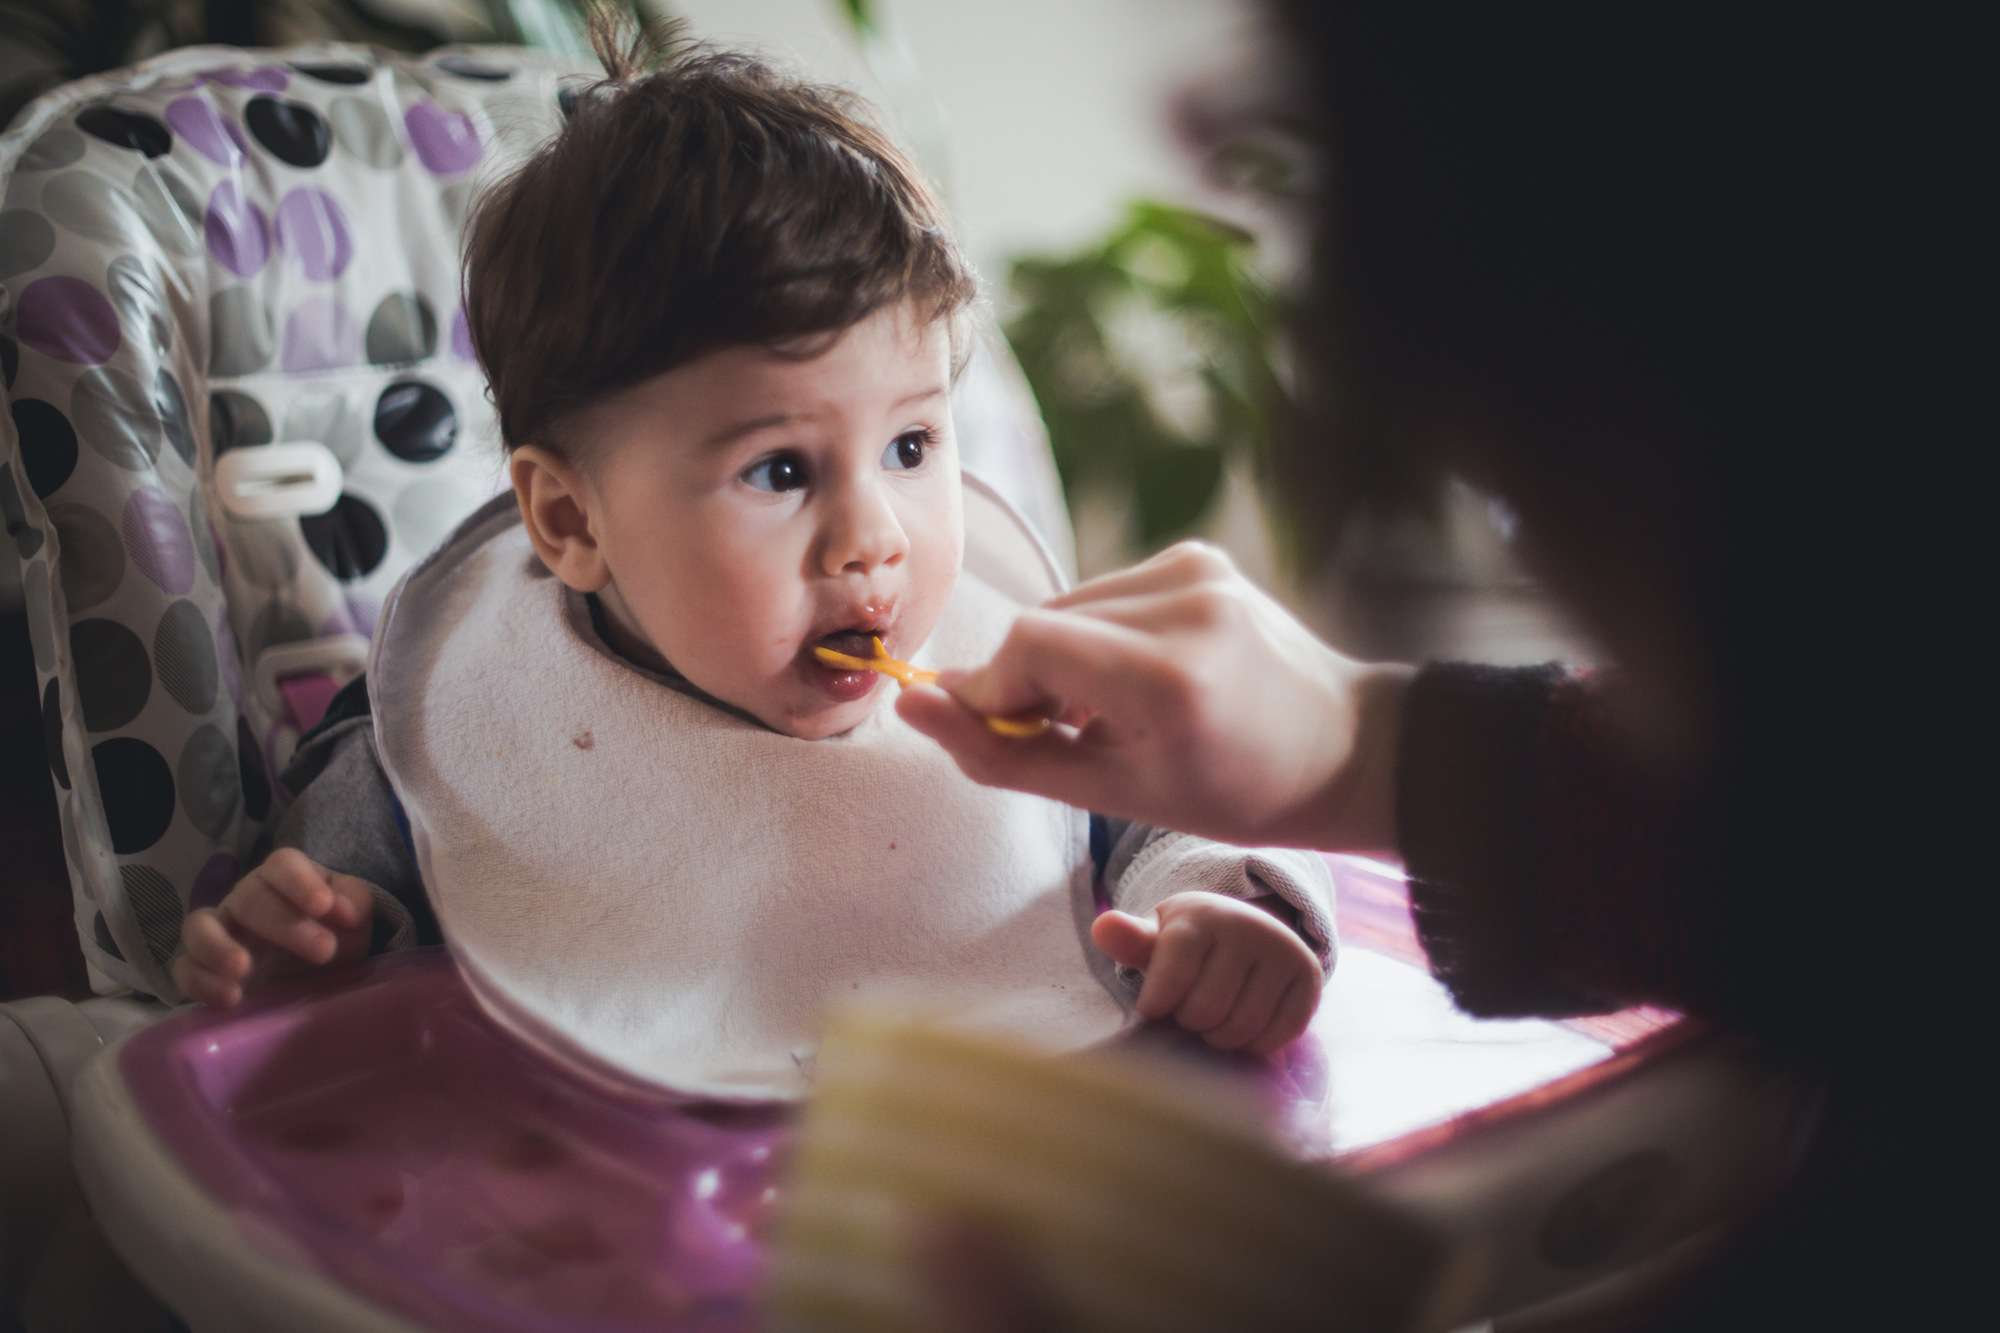 A baby being fed in a highchair